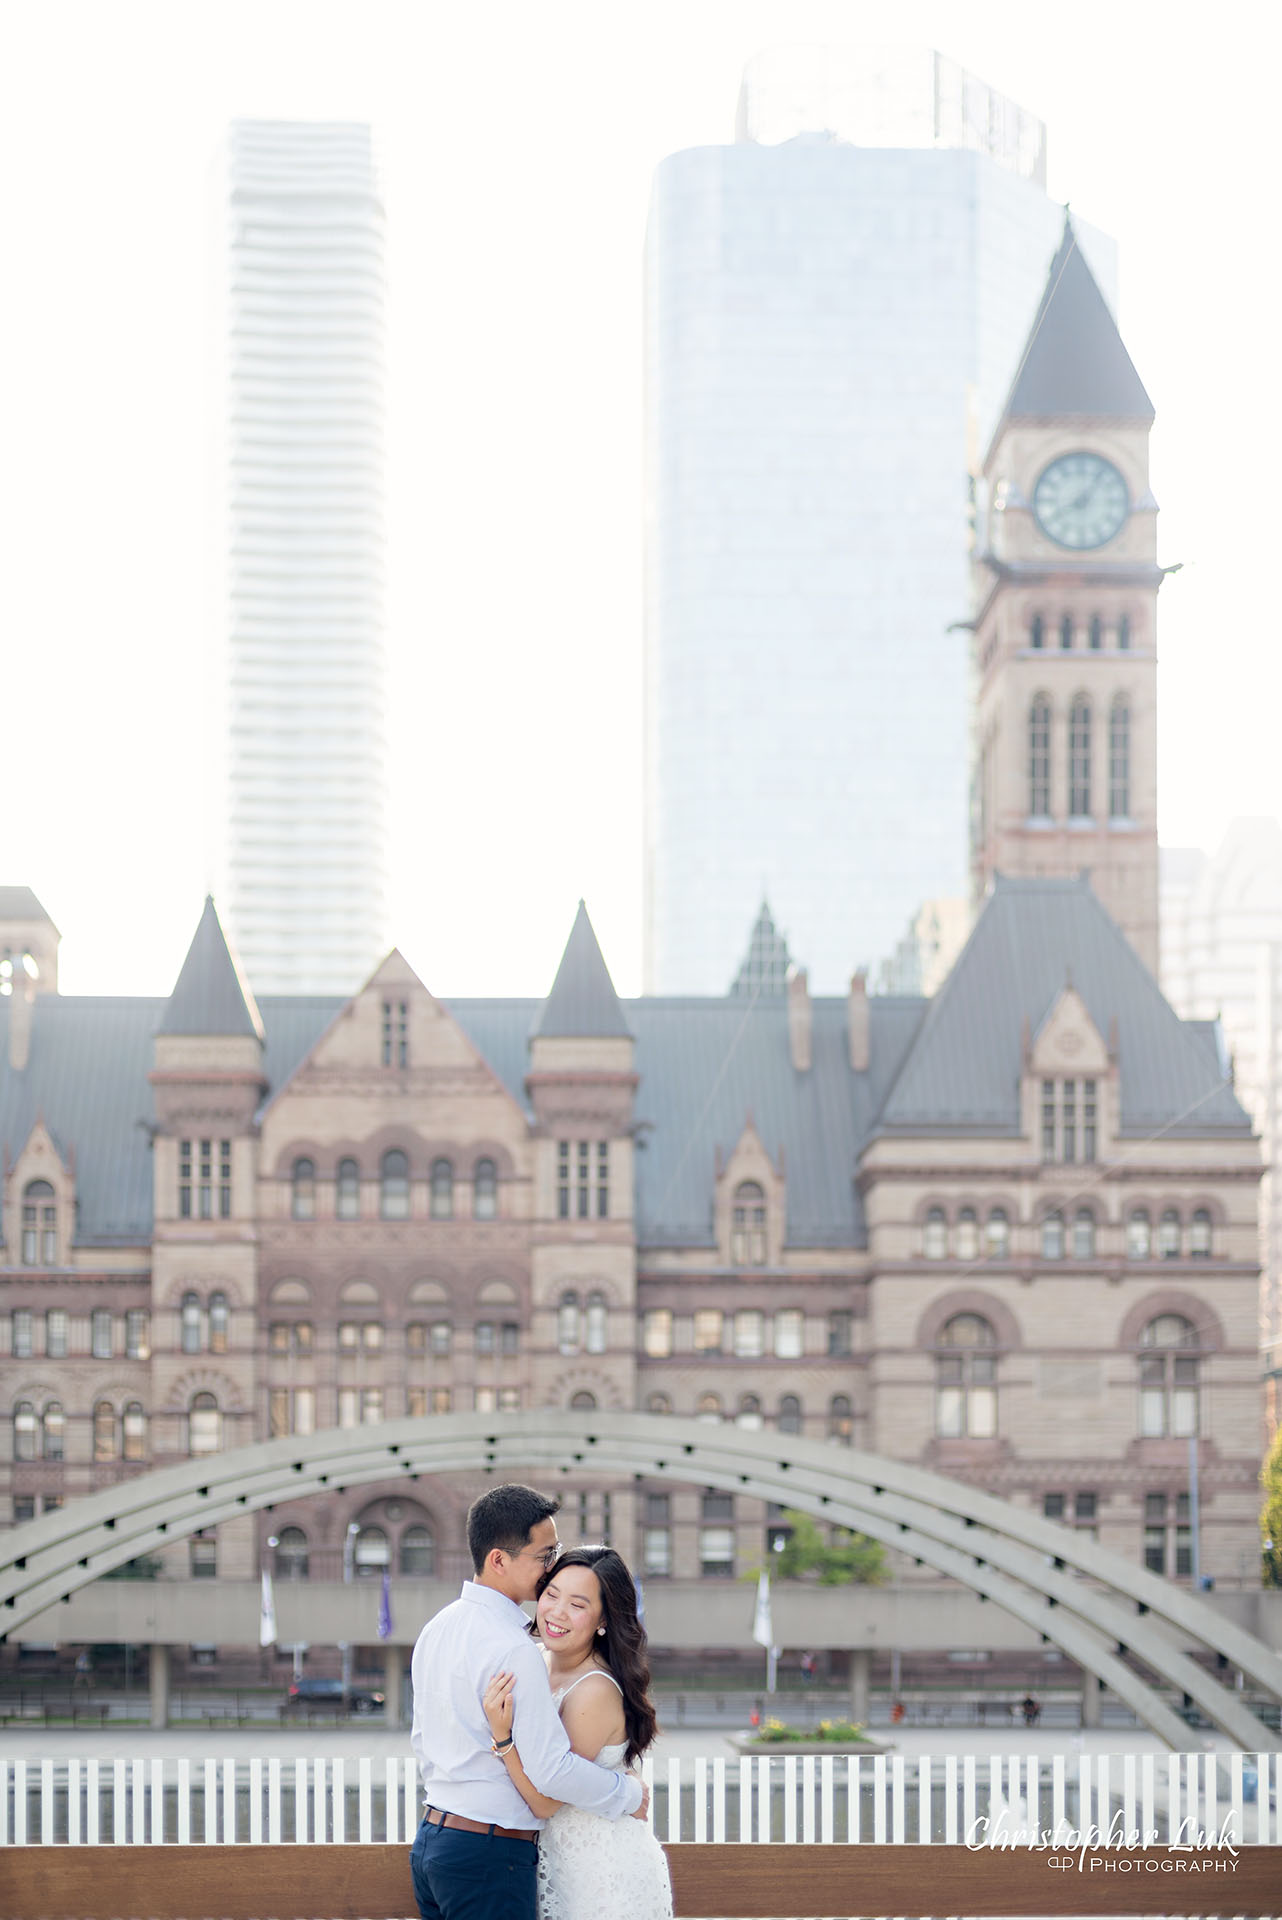 Christopher Luk Wedding Photographer Toronto City Hall Nathan Philips Square Elevated Bridge Arches Archway Bride Groom Hug Holding Each Other Intimate Natural Candid Photojournalistic Portrait